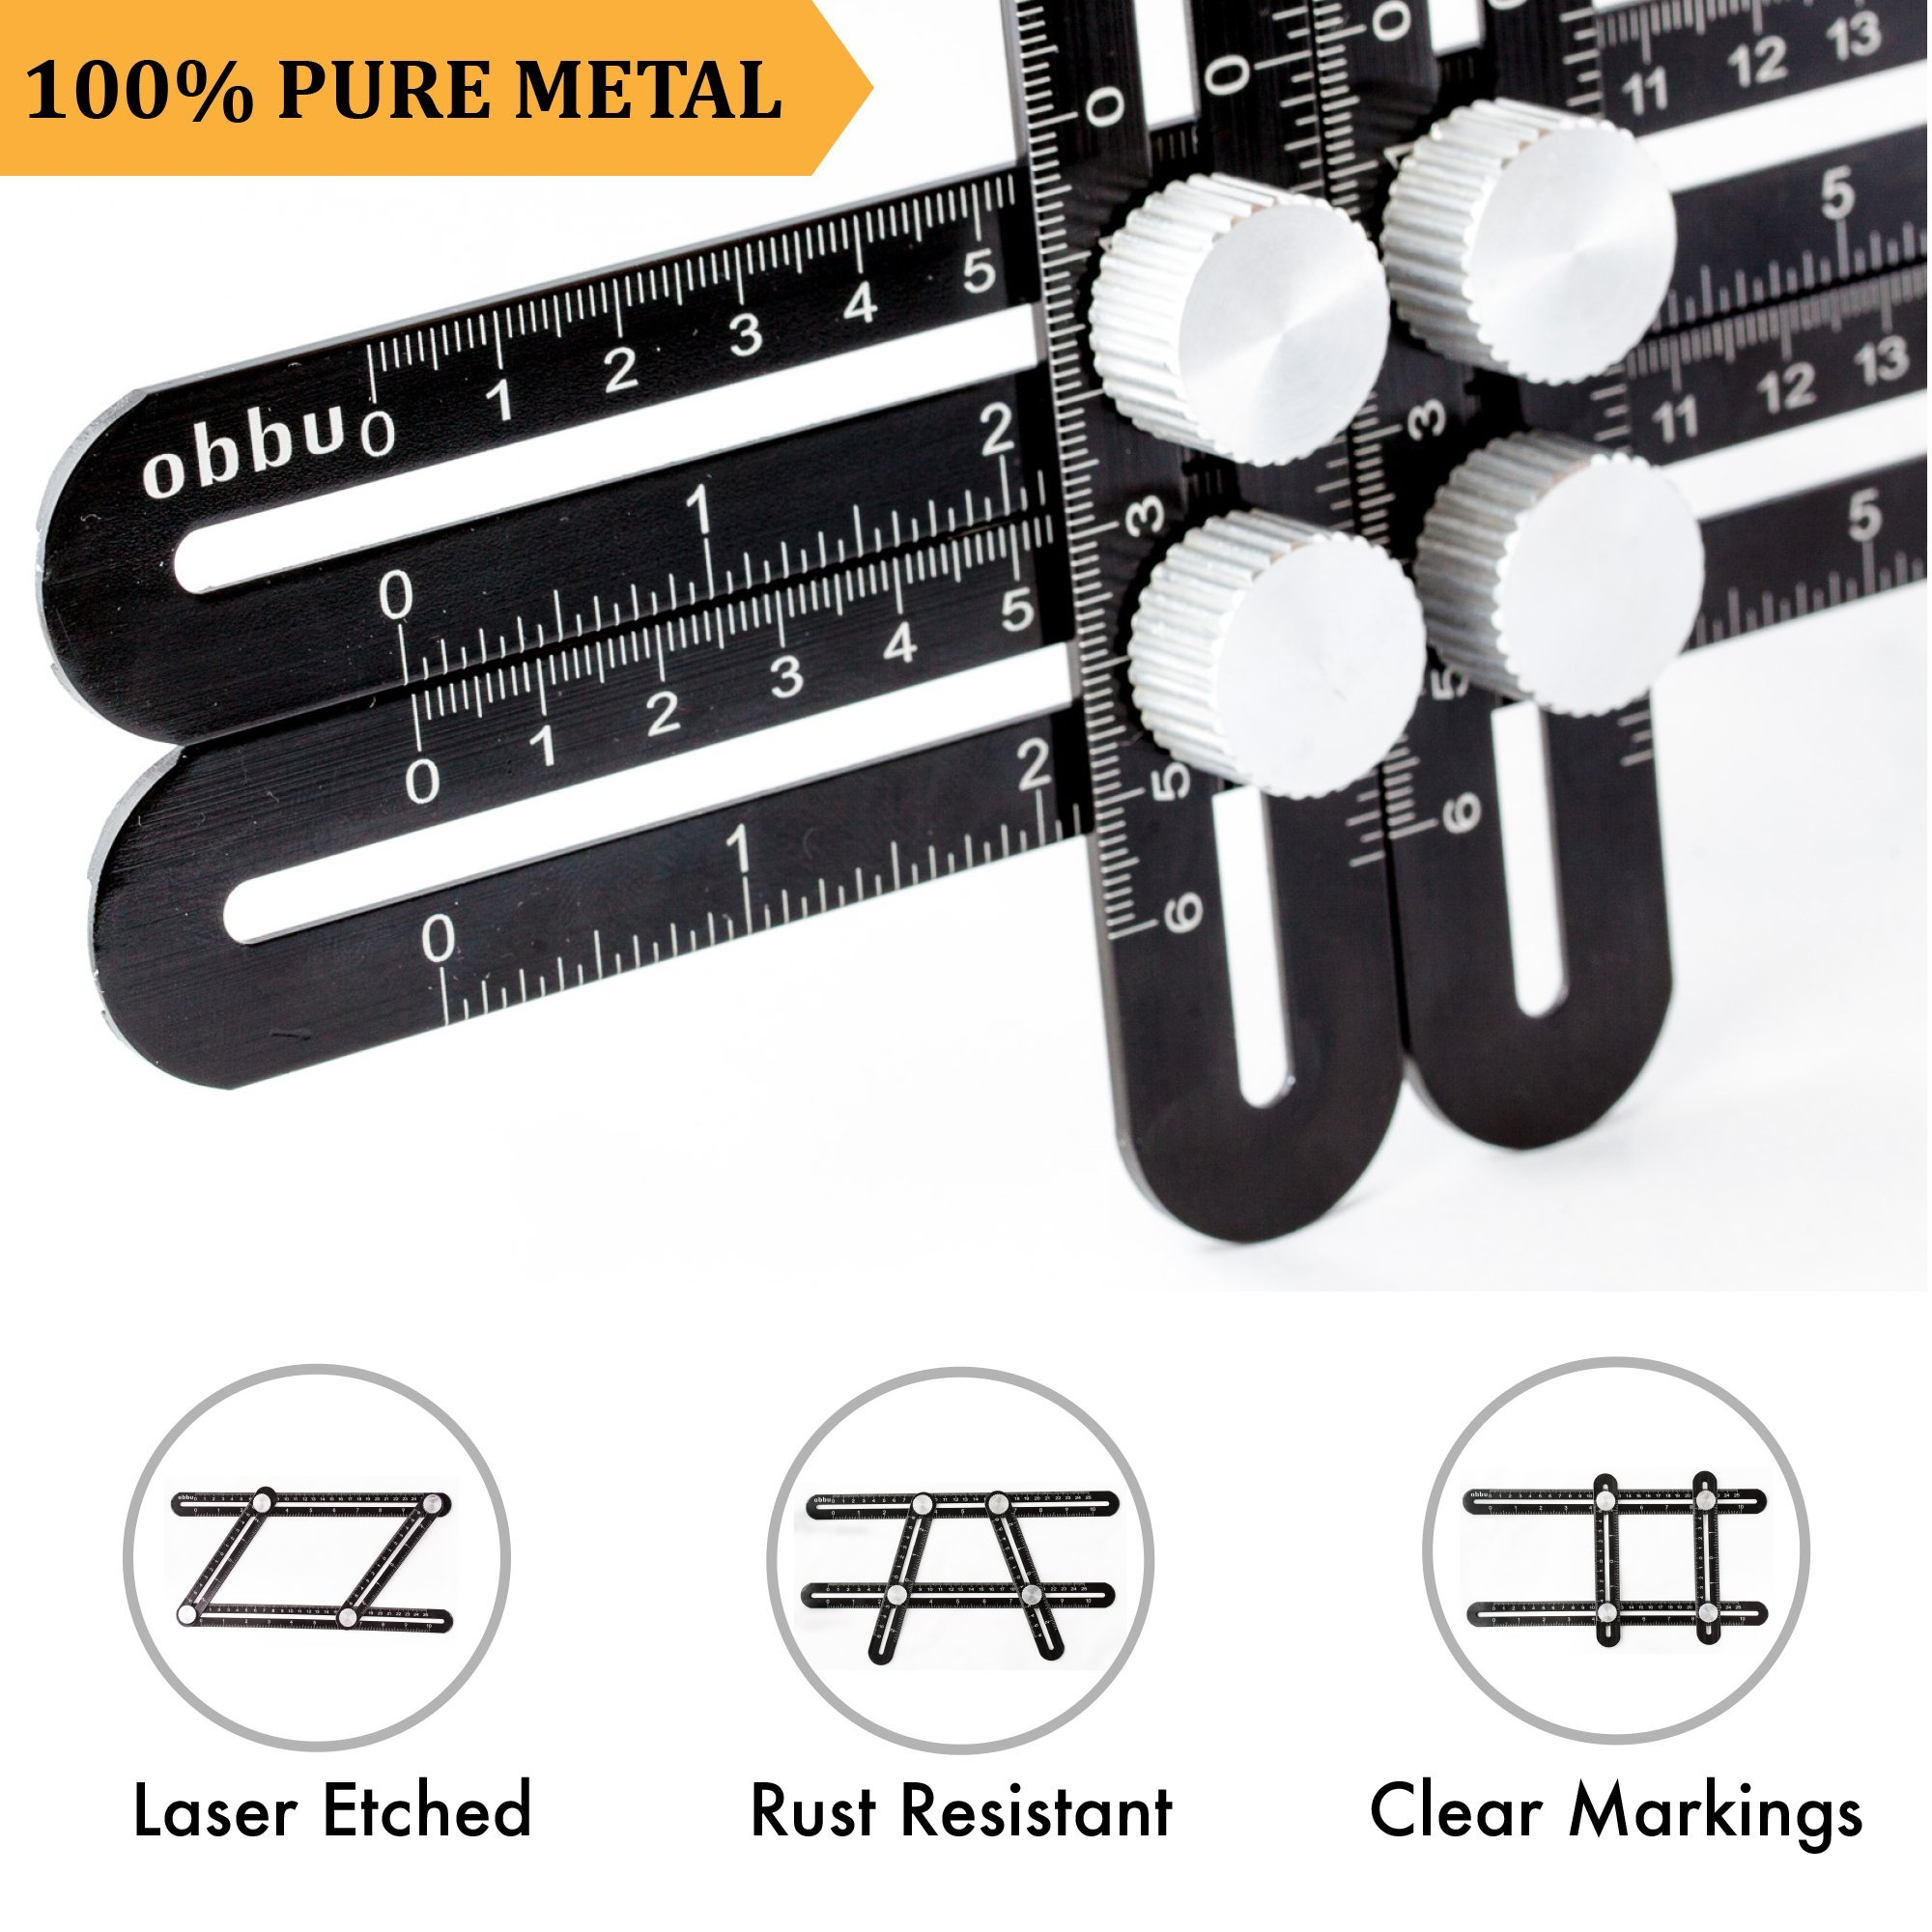 Obbu Universal Multi Angle Measuring Ruler – Premium Aluminum Metal – Angle Measuring Multi Tool – No Plastic – Laser Etched – Template Tool for Tool Box for Men – Gift for Handymen Crafts men (Black)